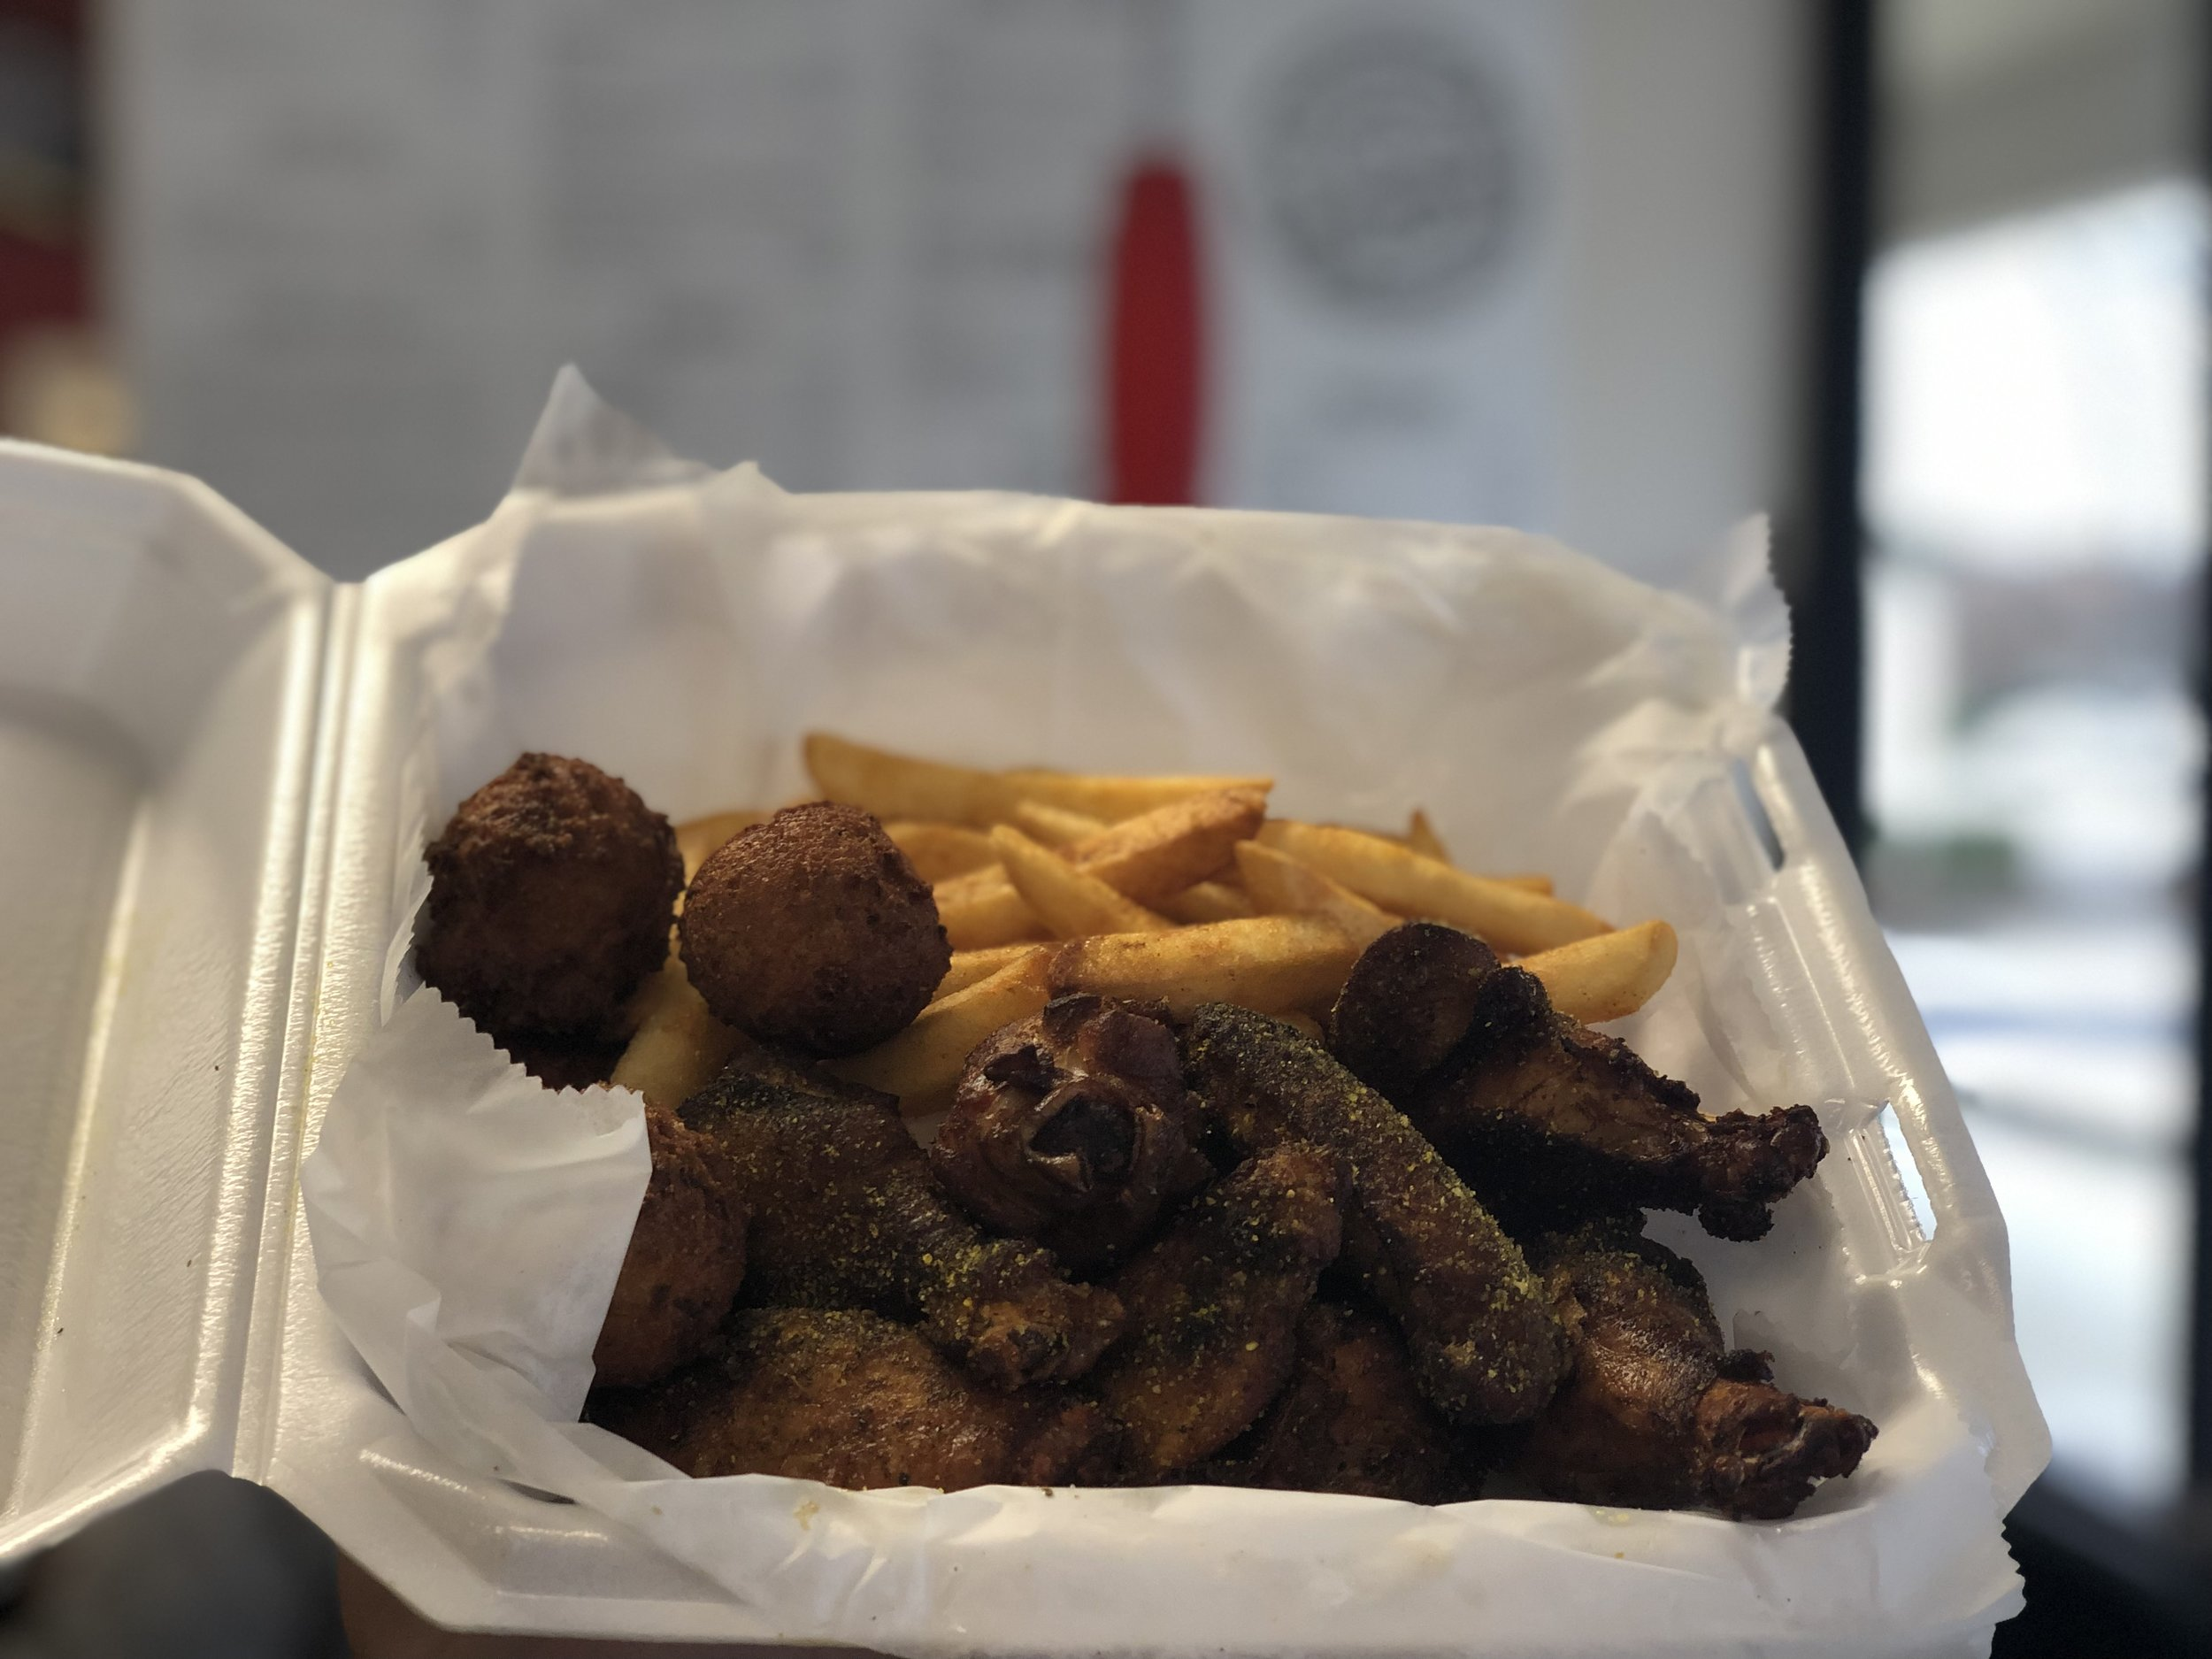 10 Smoked Traditional Wings with Lemon Pepper Dry Rub with Hushpuppies and Fries. $11.50 (Includes Tax)